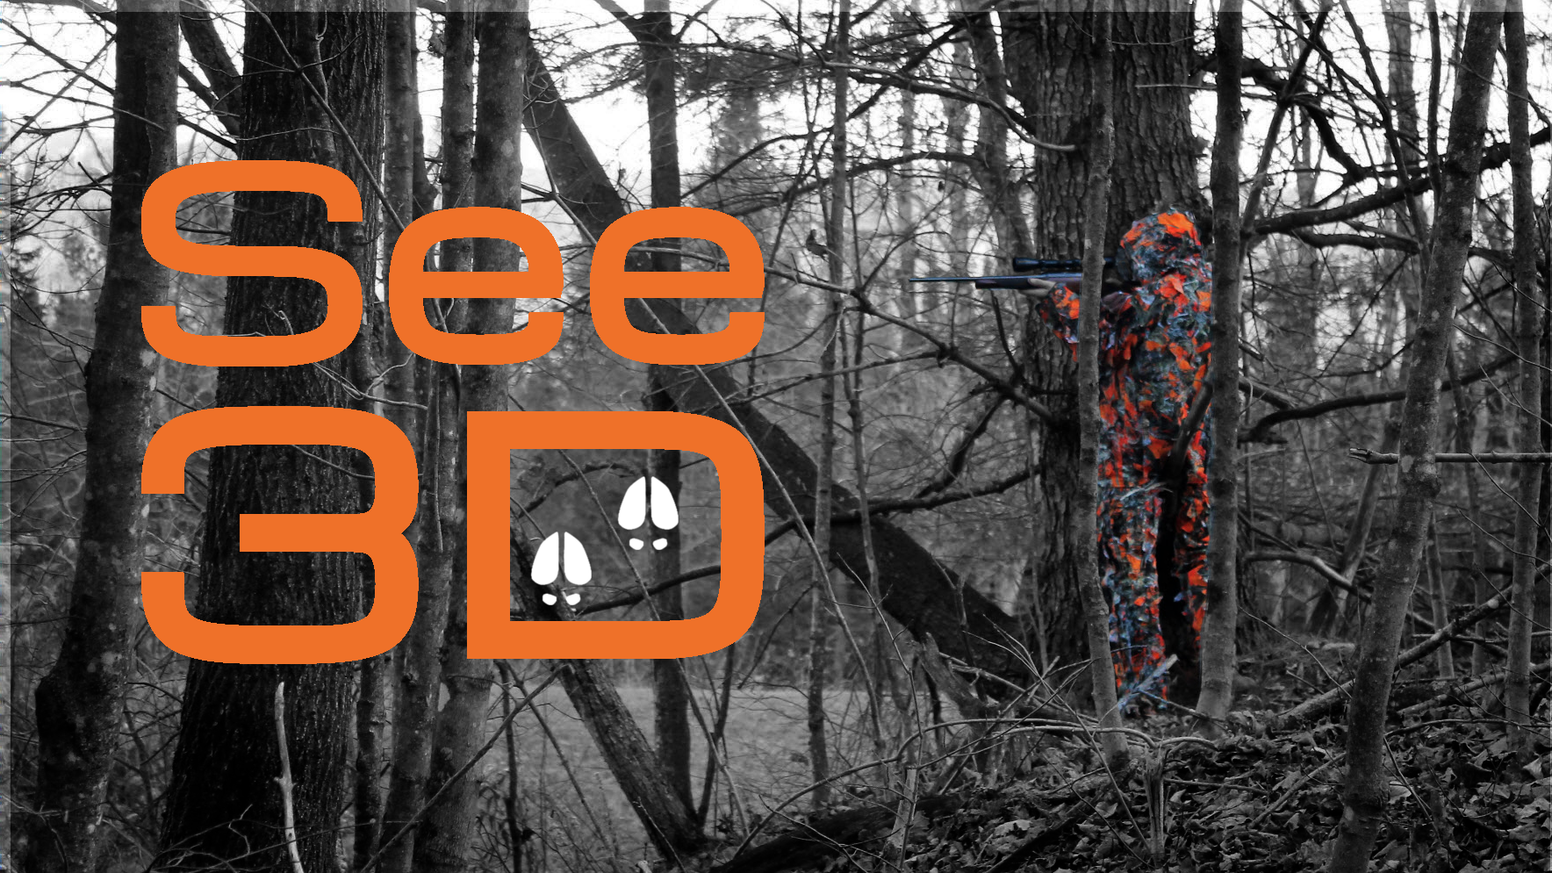 Be Seen. Be Safe. Be Invisible. A revolutionary camouflage for hunters that makes them invisible to deer yet highly visible to hunters.